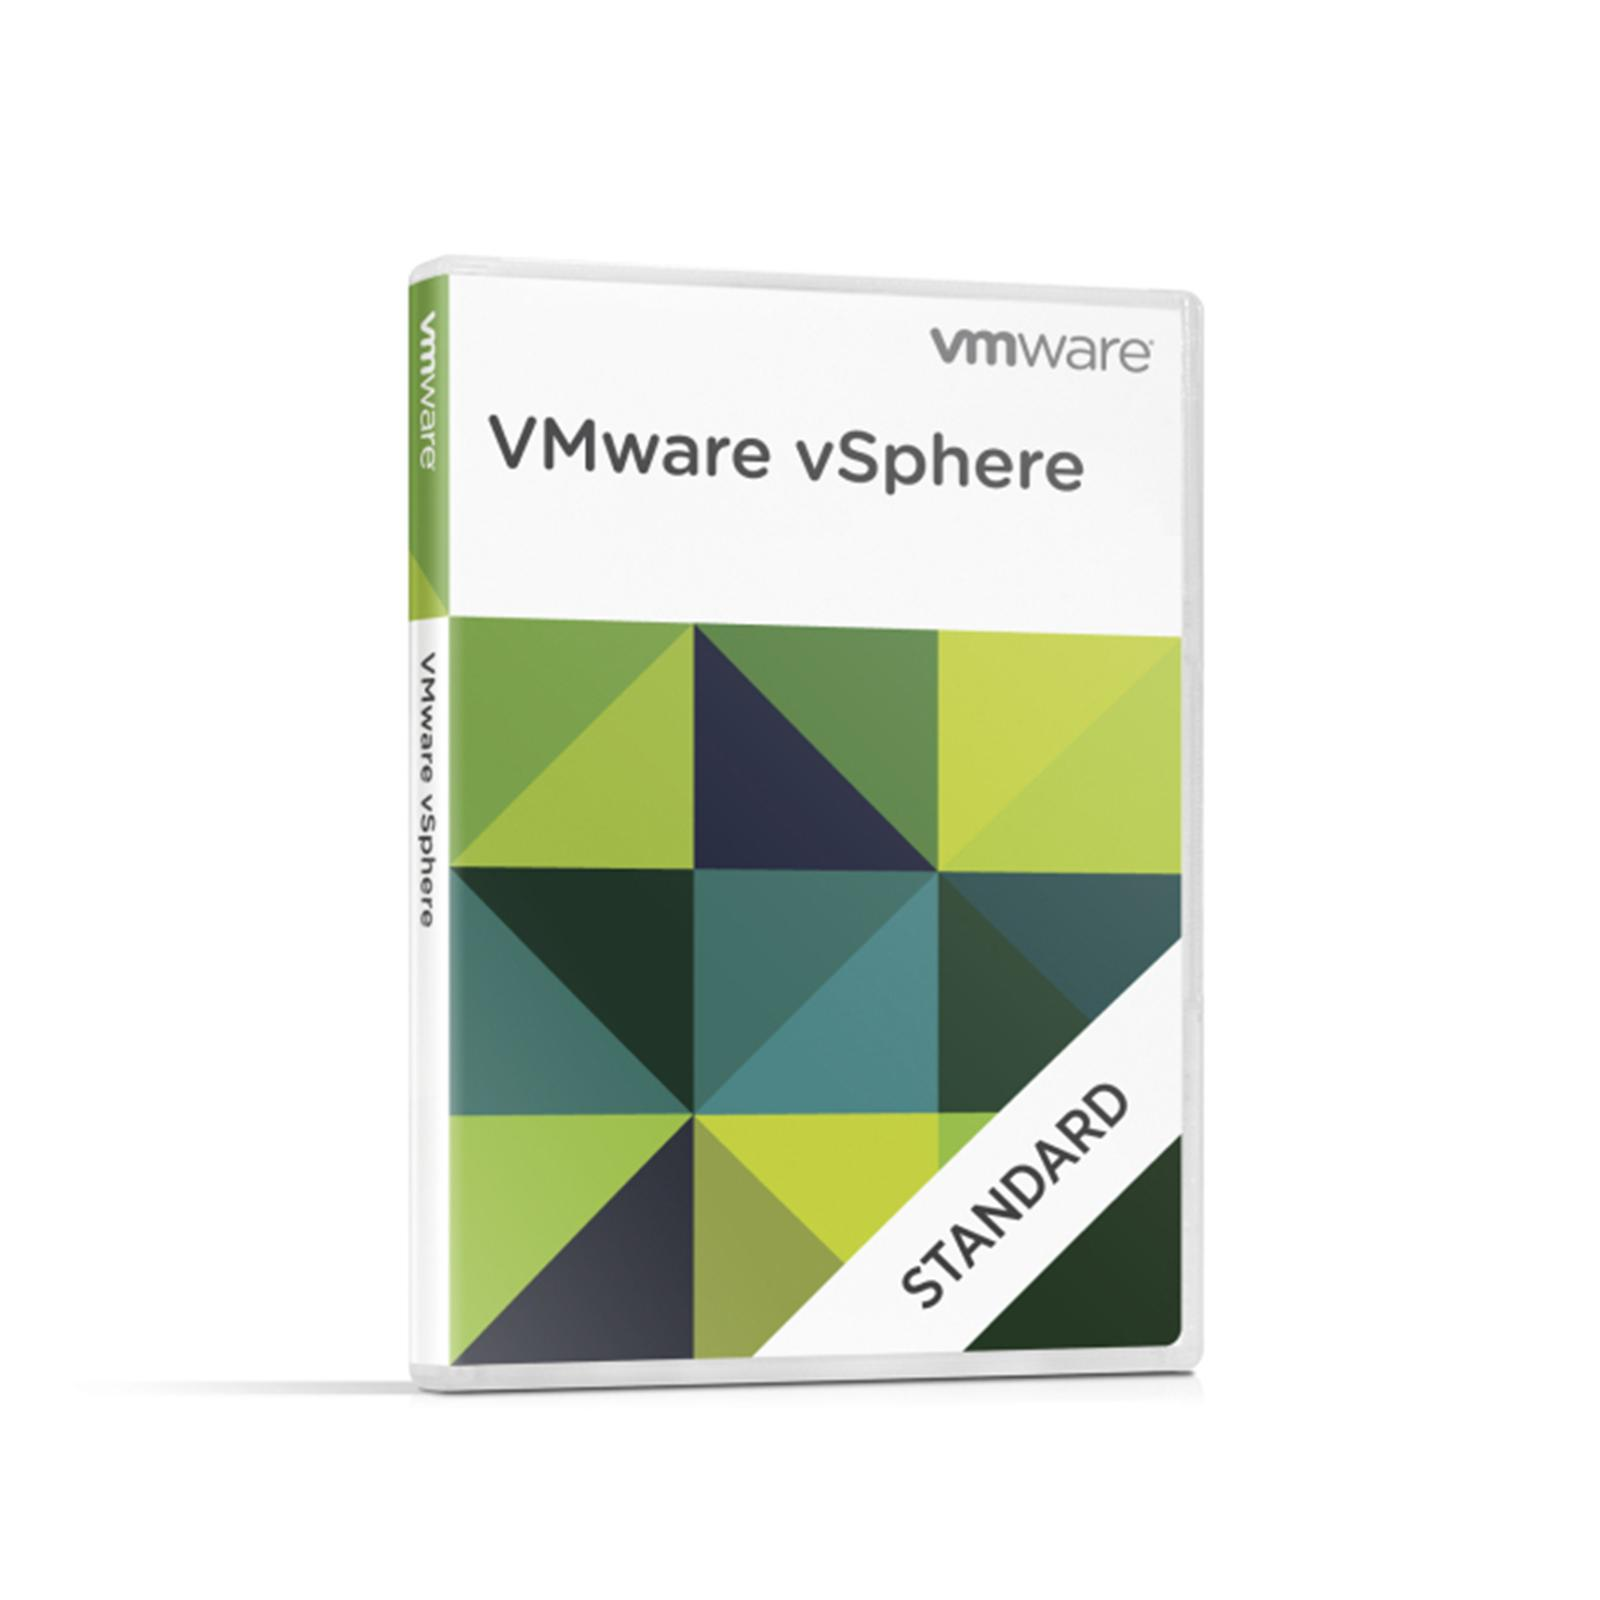 vmware-std-and-support-vmware-vsphere-standard-1-procesador-and-1-year-support